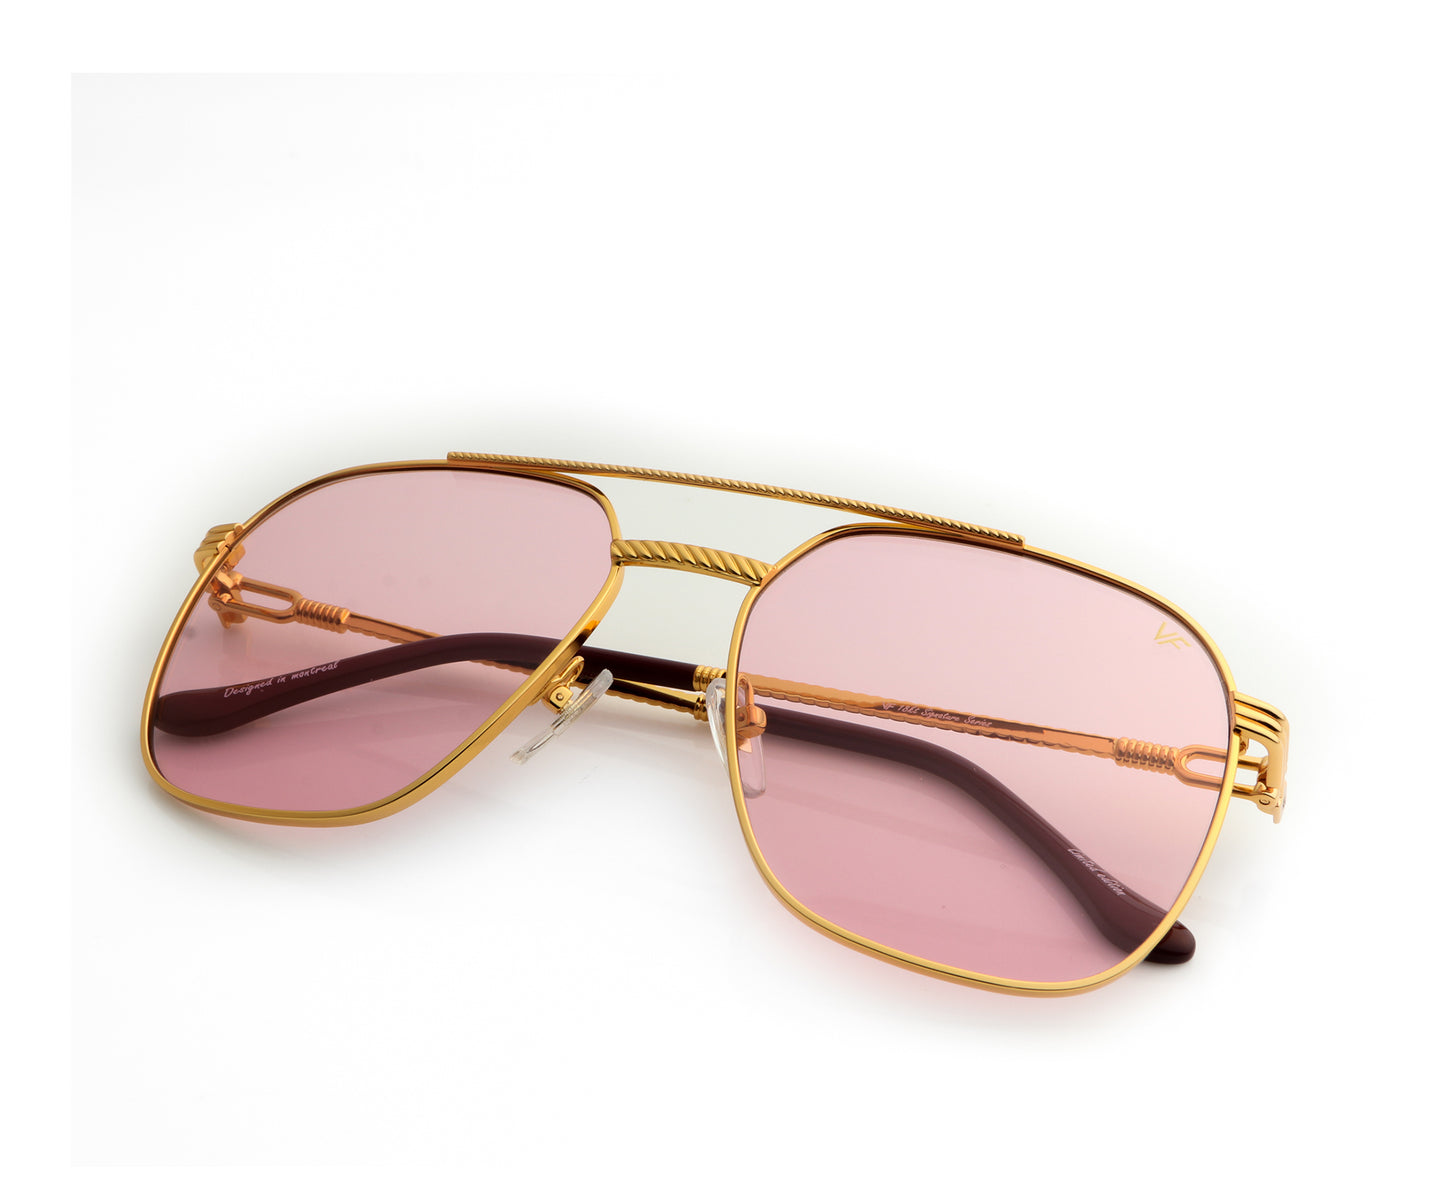 VF Narcos 18KT Gold (Light Rose), VF Masterpiece , glasses frames, eyeglasses online, eyeglass frames, mens glasses, womens glasses, buy glasses online, designer eyeglasses, vintage sunglasses, retro sunglasses, vintage glasses, sunglass, eyeglass, glasses, lens, vintage frames company, vf